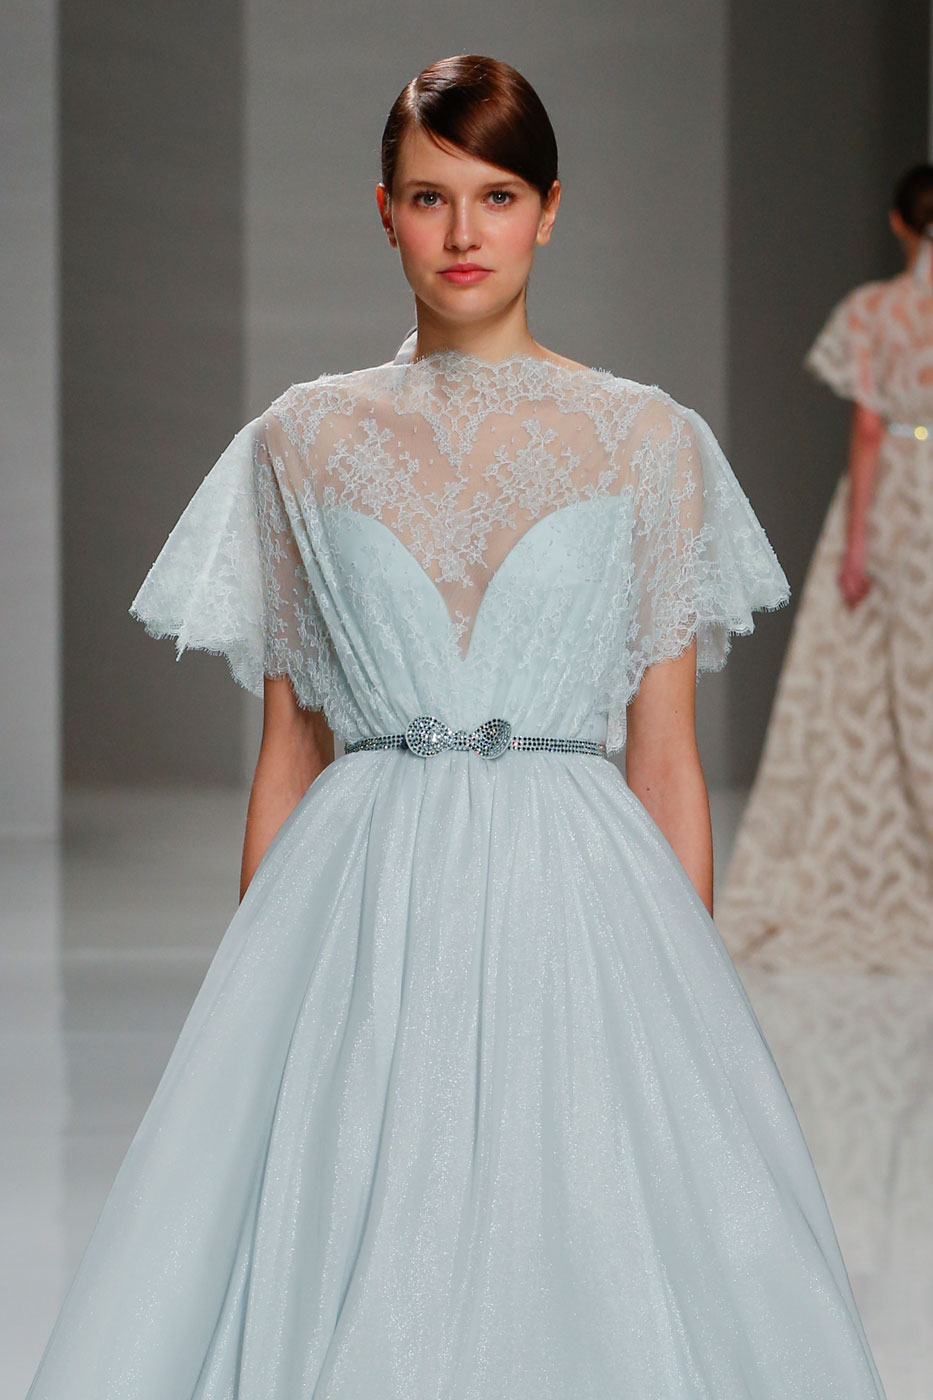 Georges-Hobeika-fashion-runway-show-haute-couture-paris-spring-2015-the-impression-62